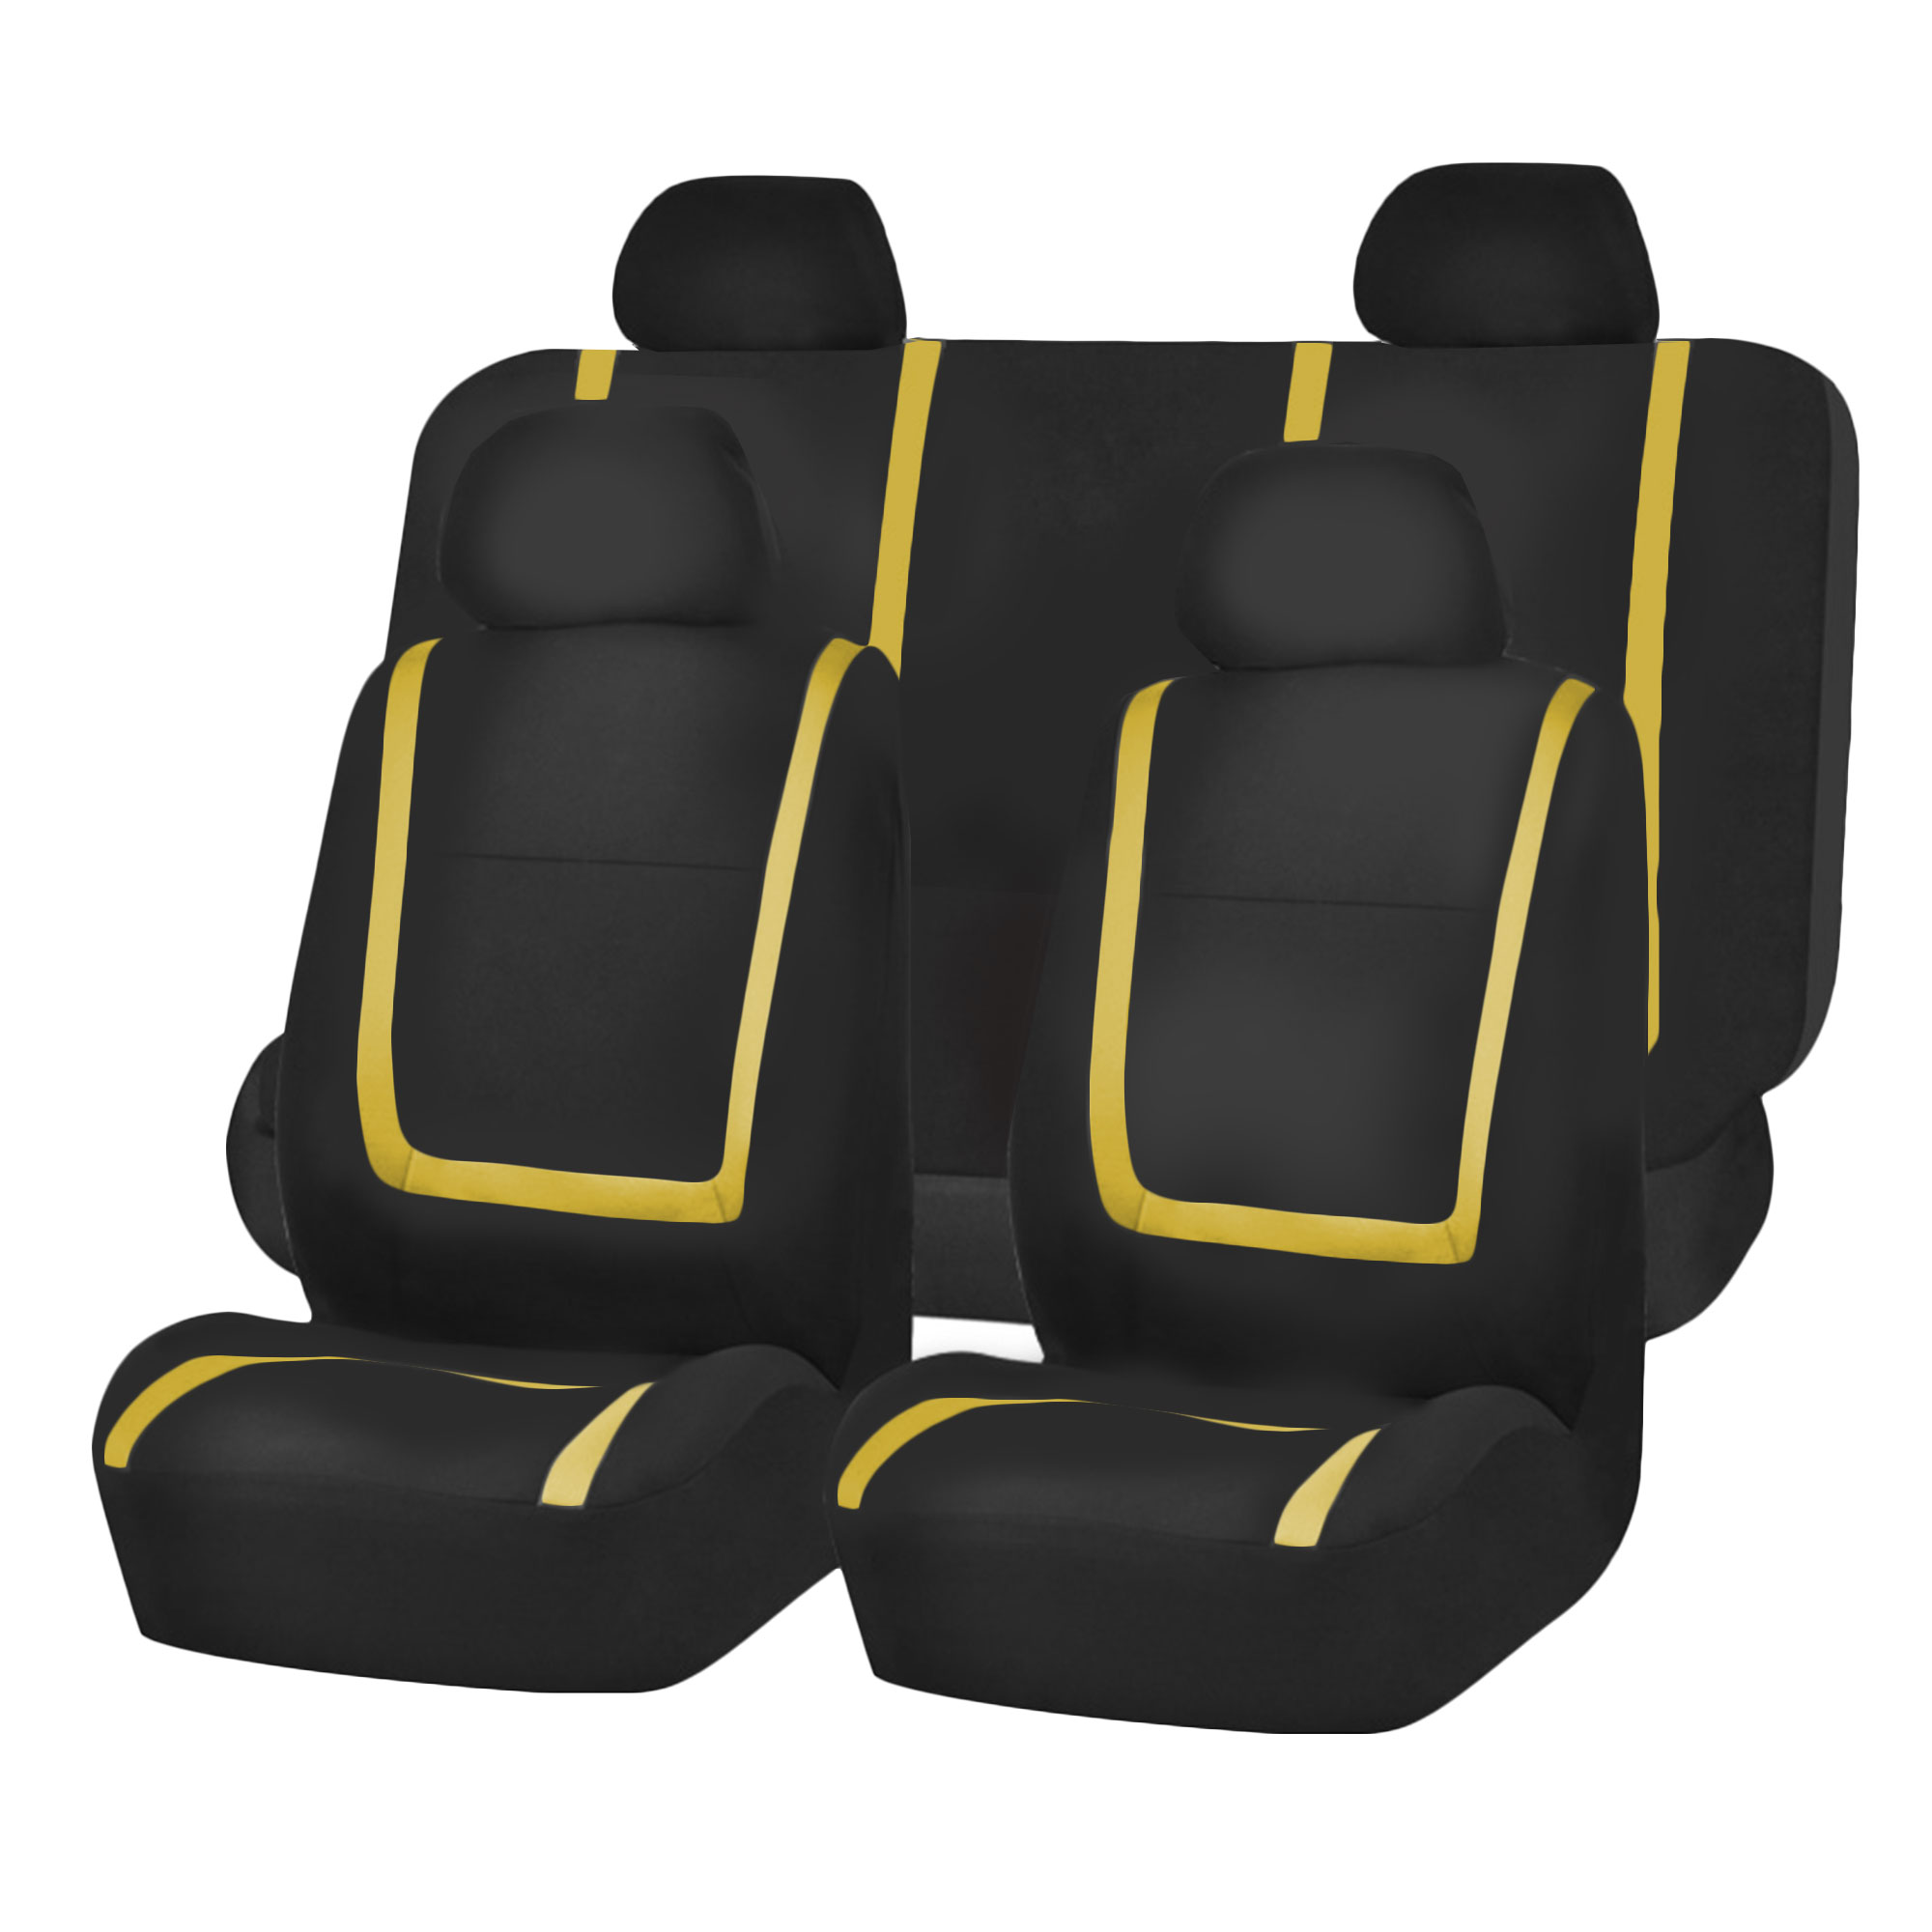 Auto Seat Covers for Car Sedan Truck Van Universal Seat Covers 12 Colors Yellow